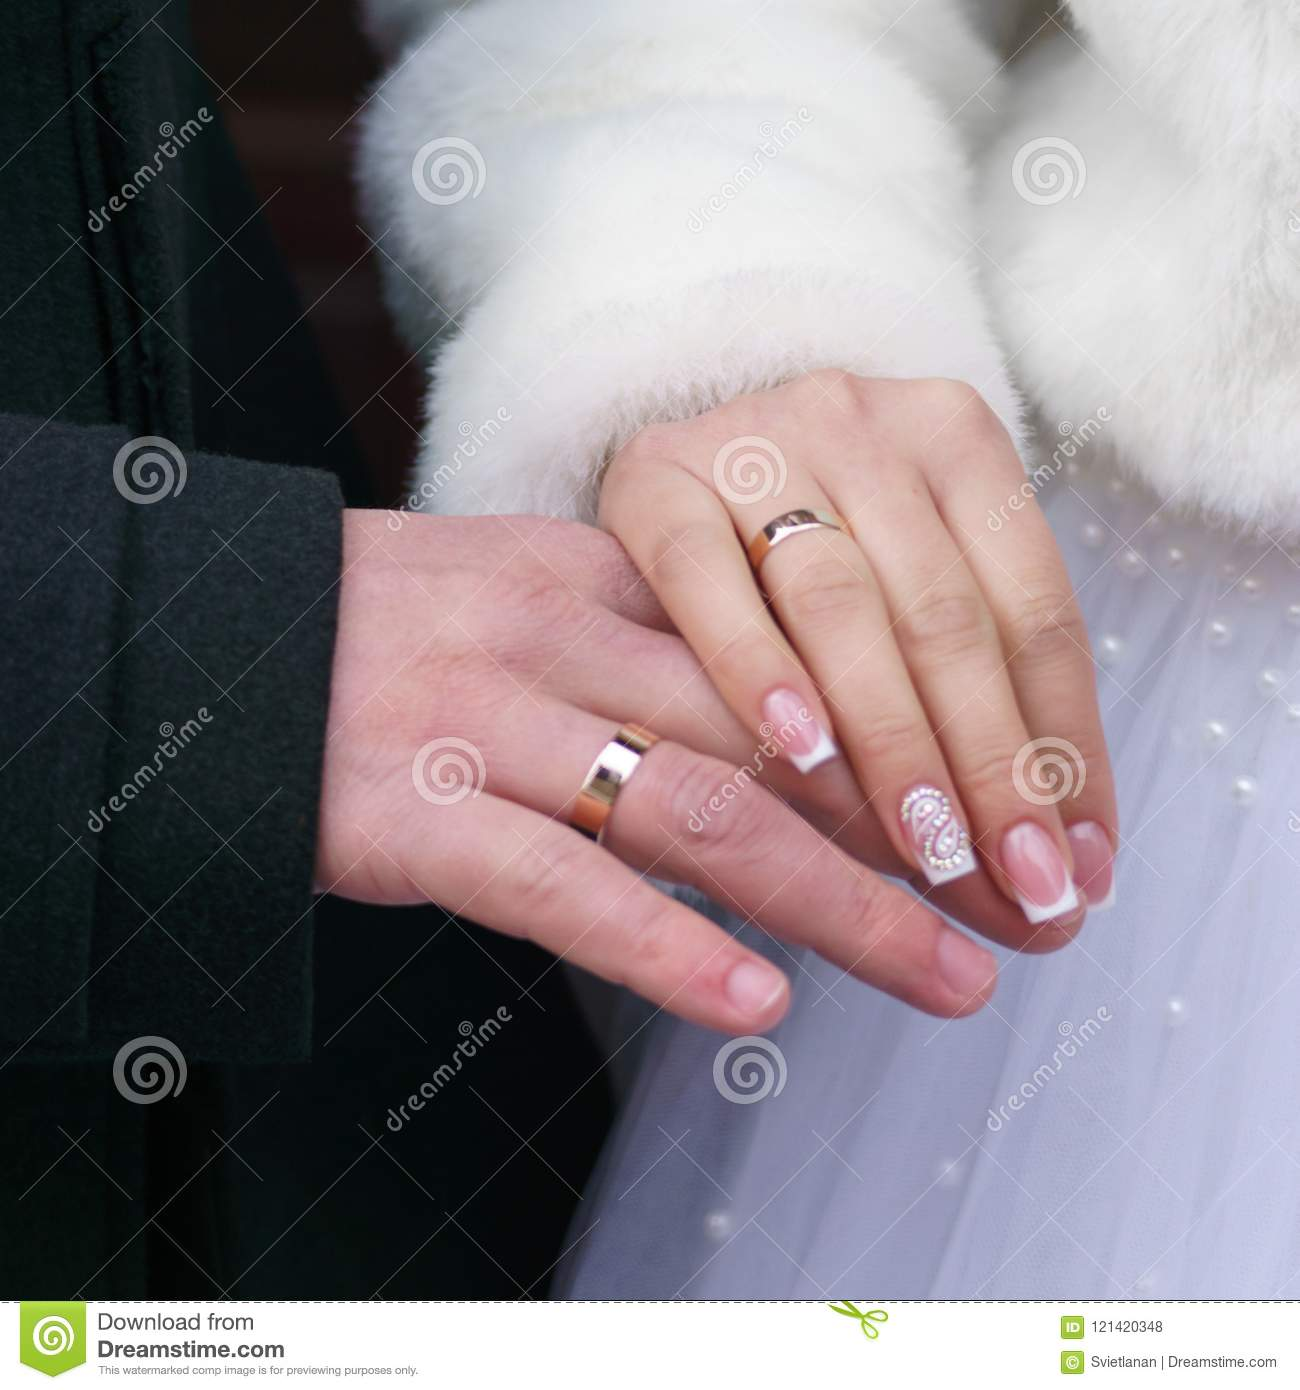 Newlywed Couples Hands With Wedding Rings. Stock Photo - Image of ...